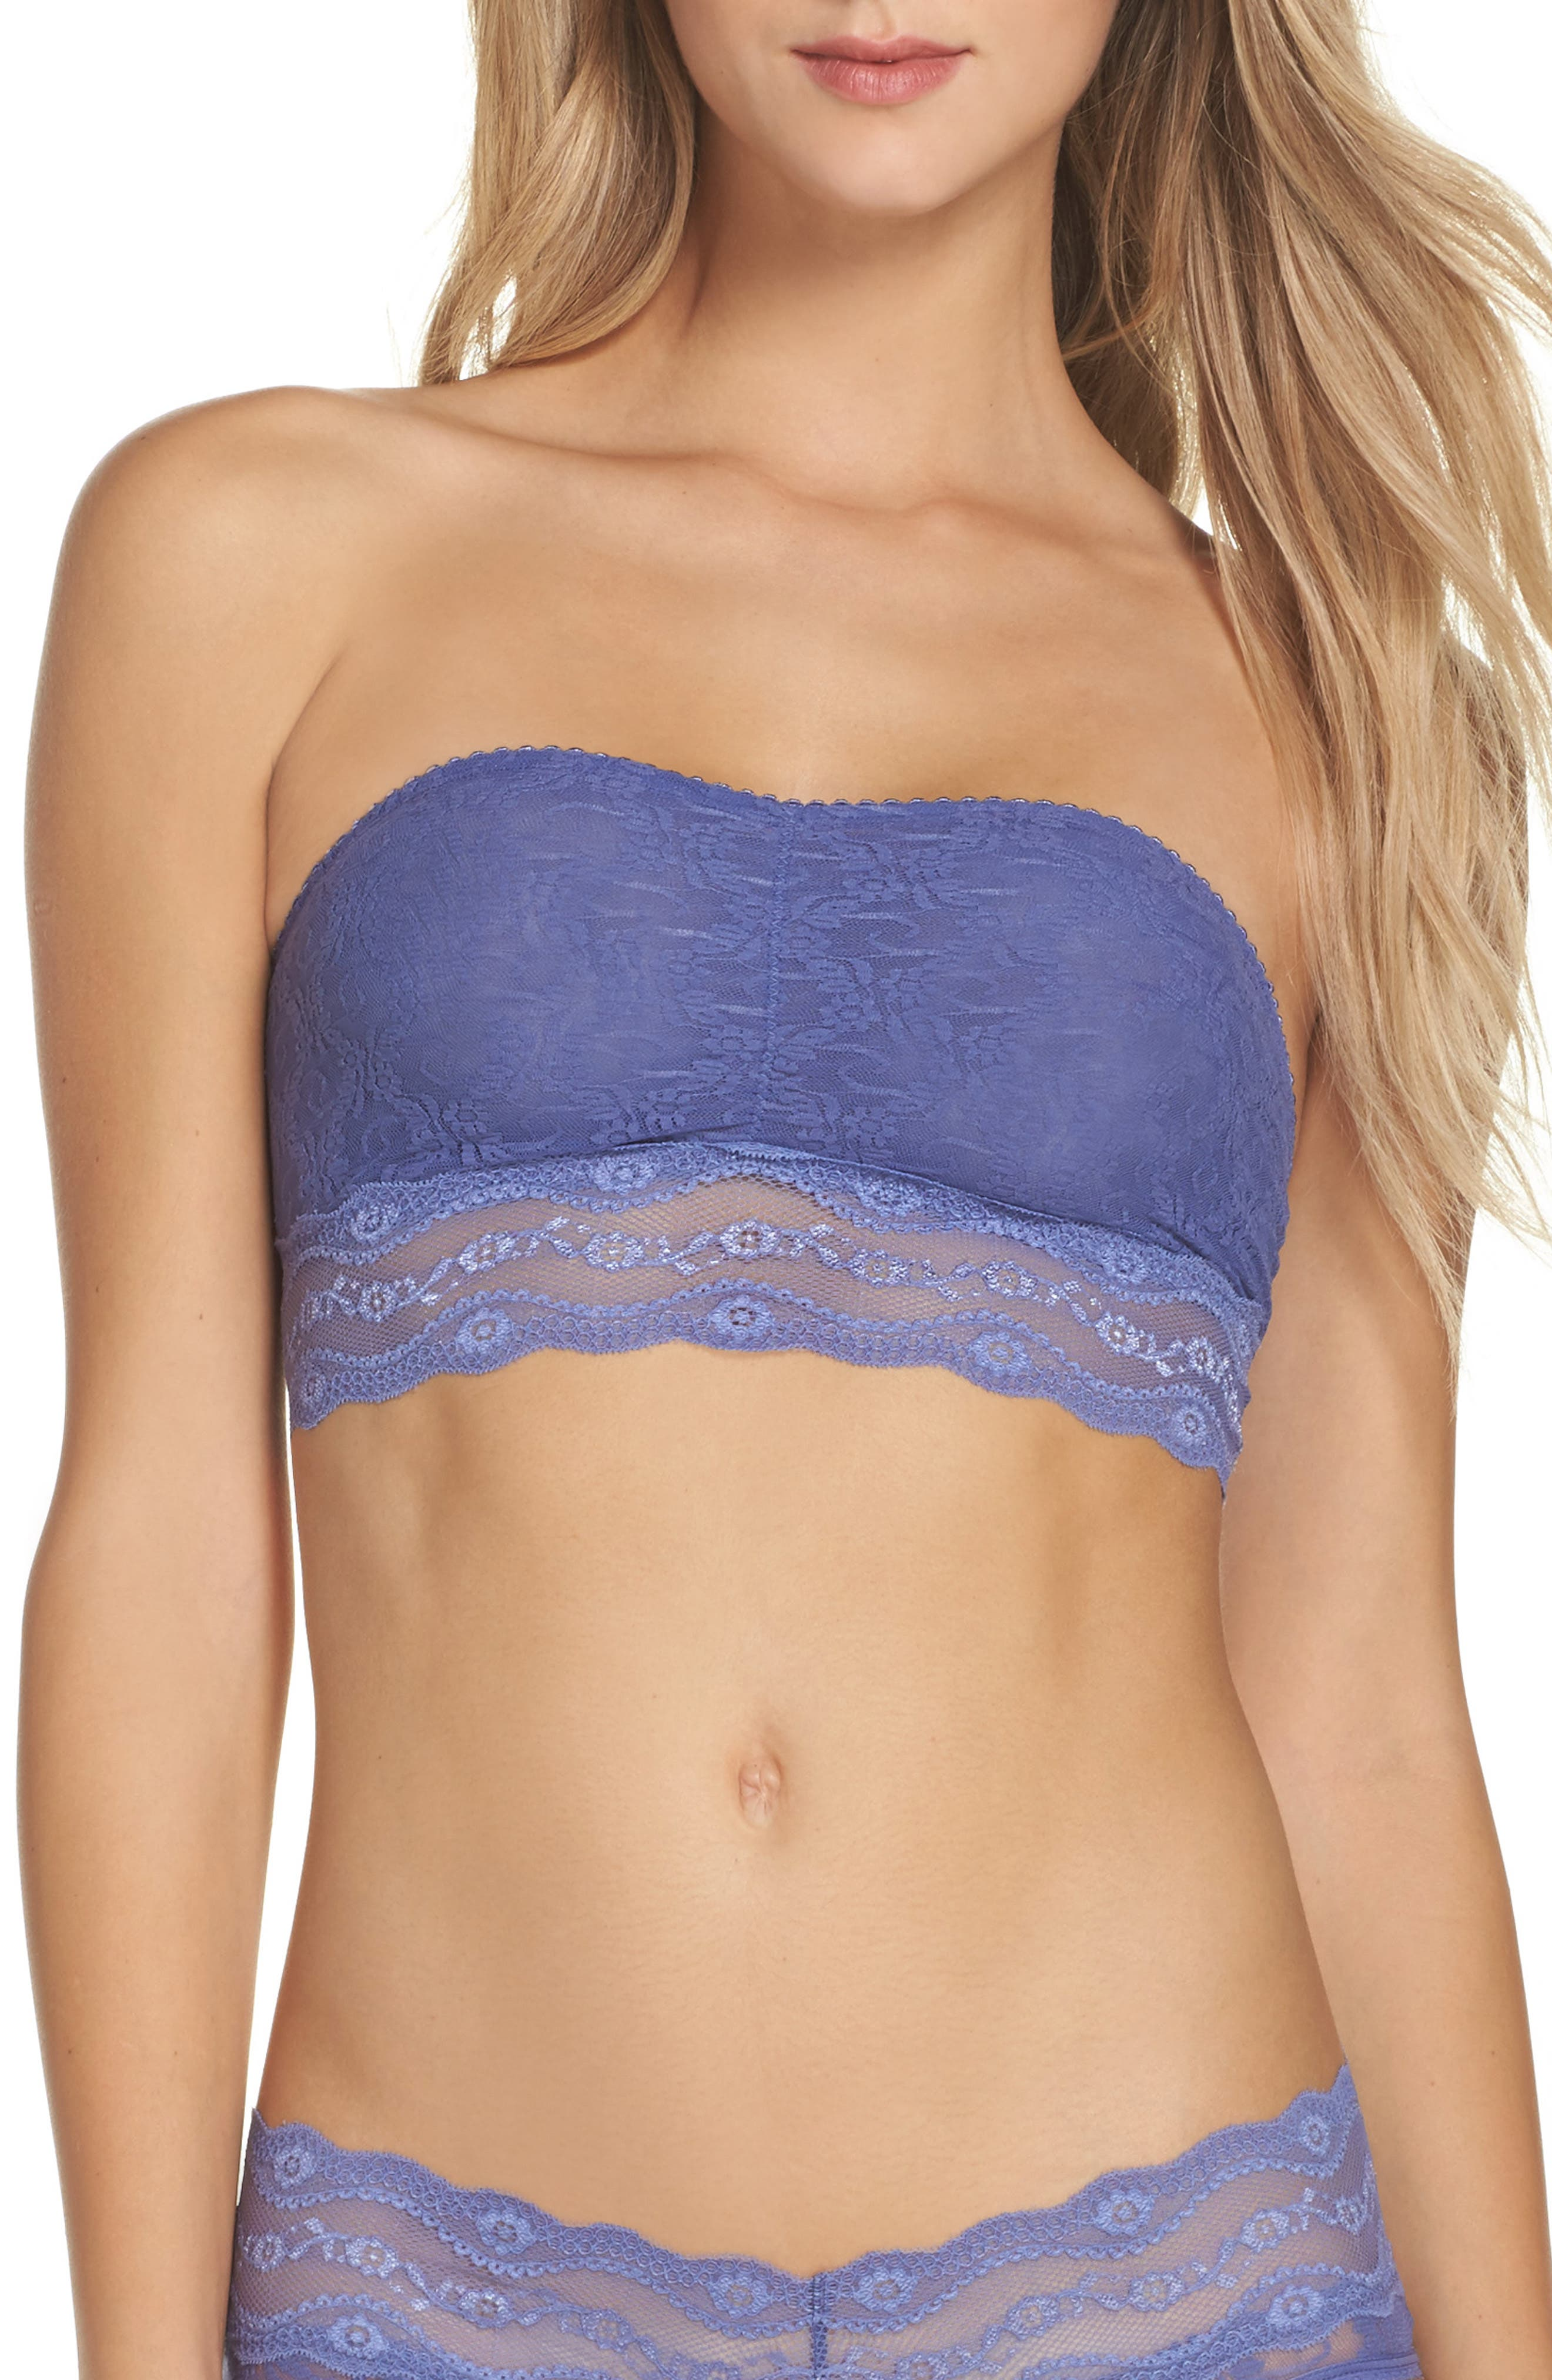 Alternate Image 1 Selected - b.tempt'd by Wacoal Lace Kiss Bandeau Bra